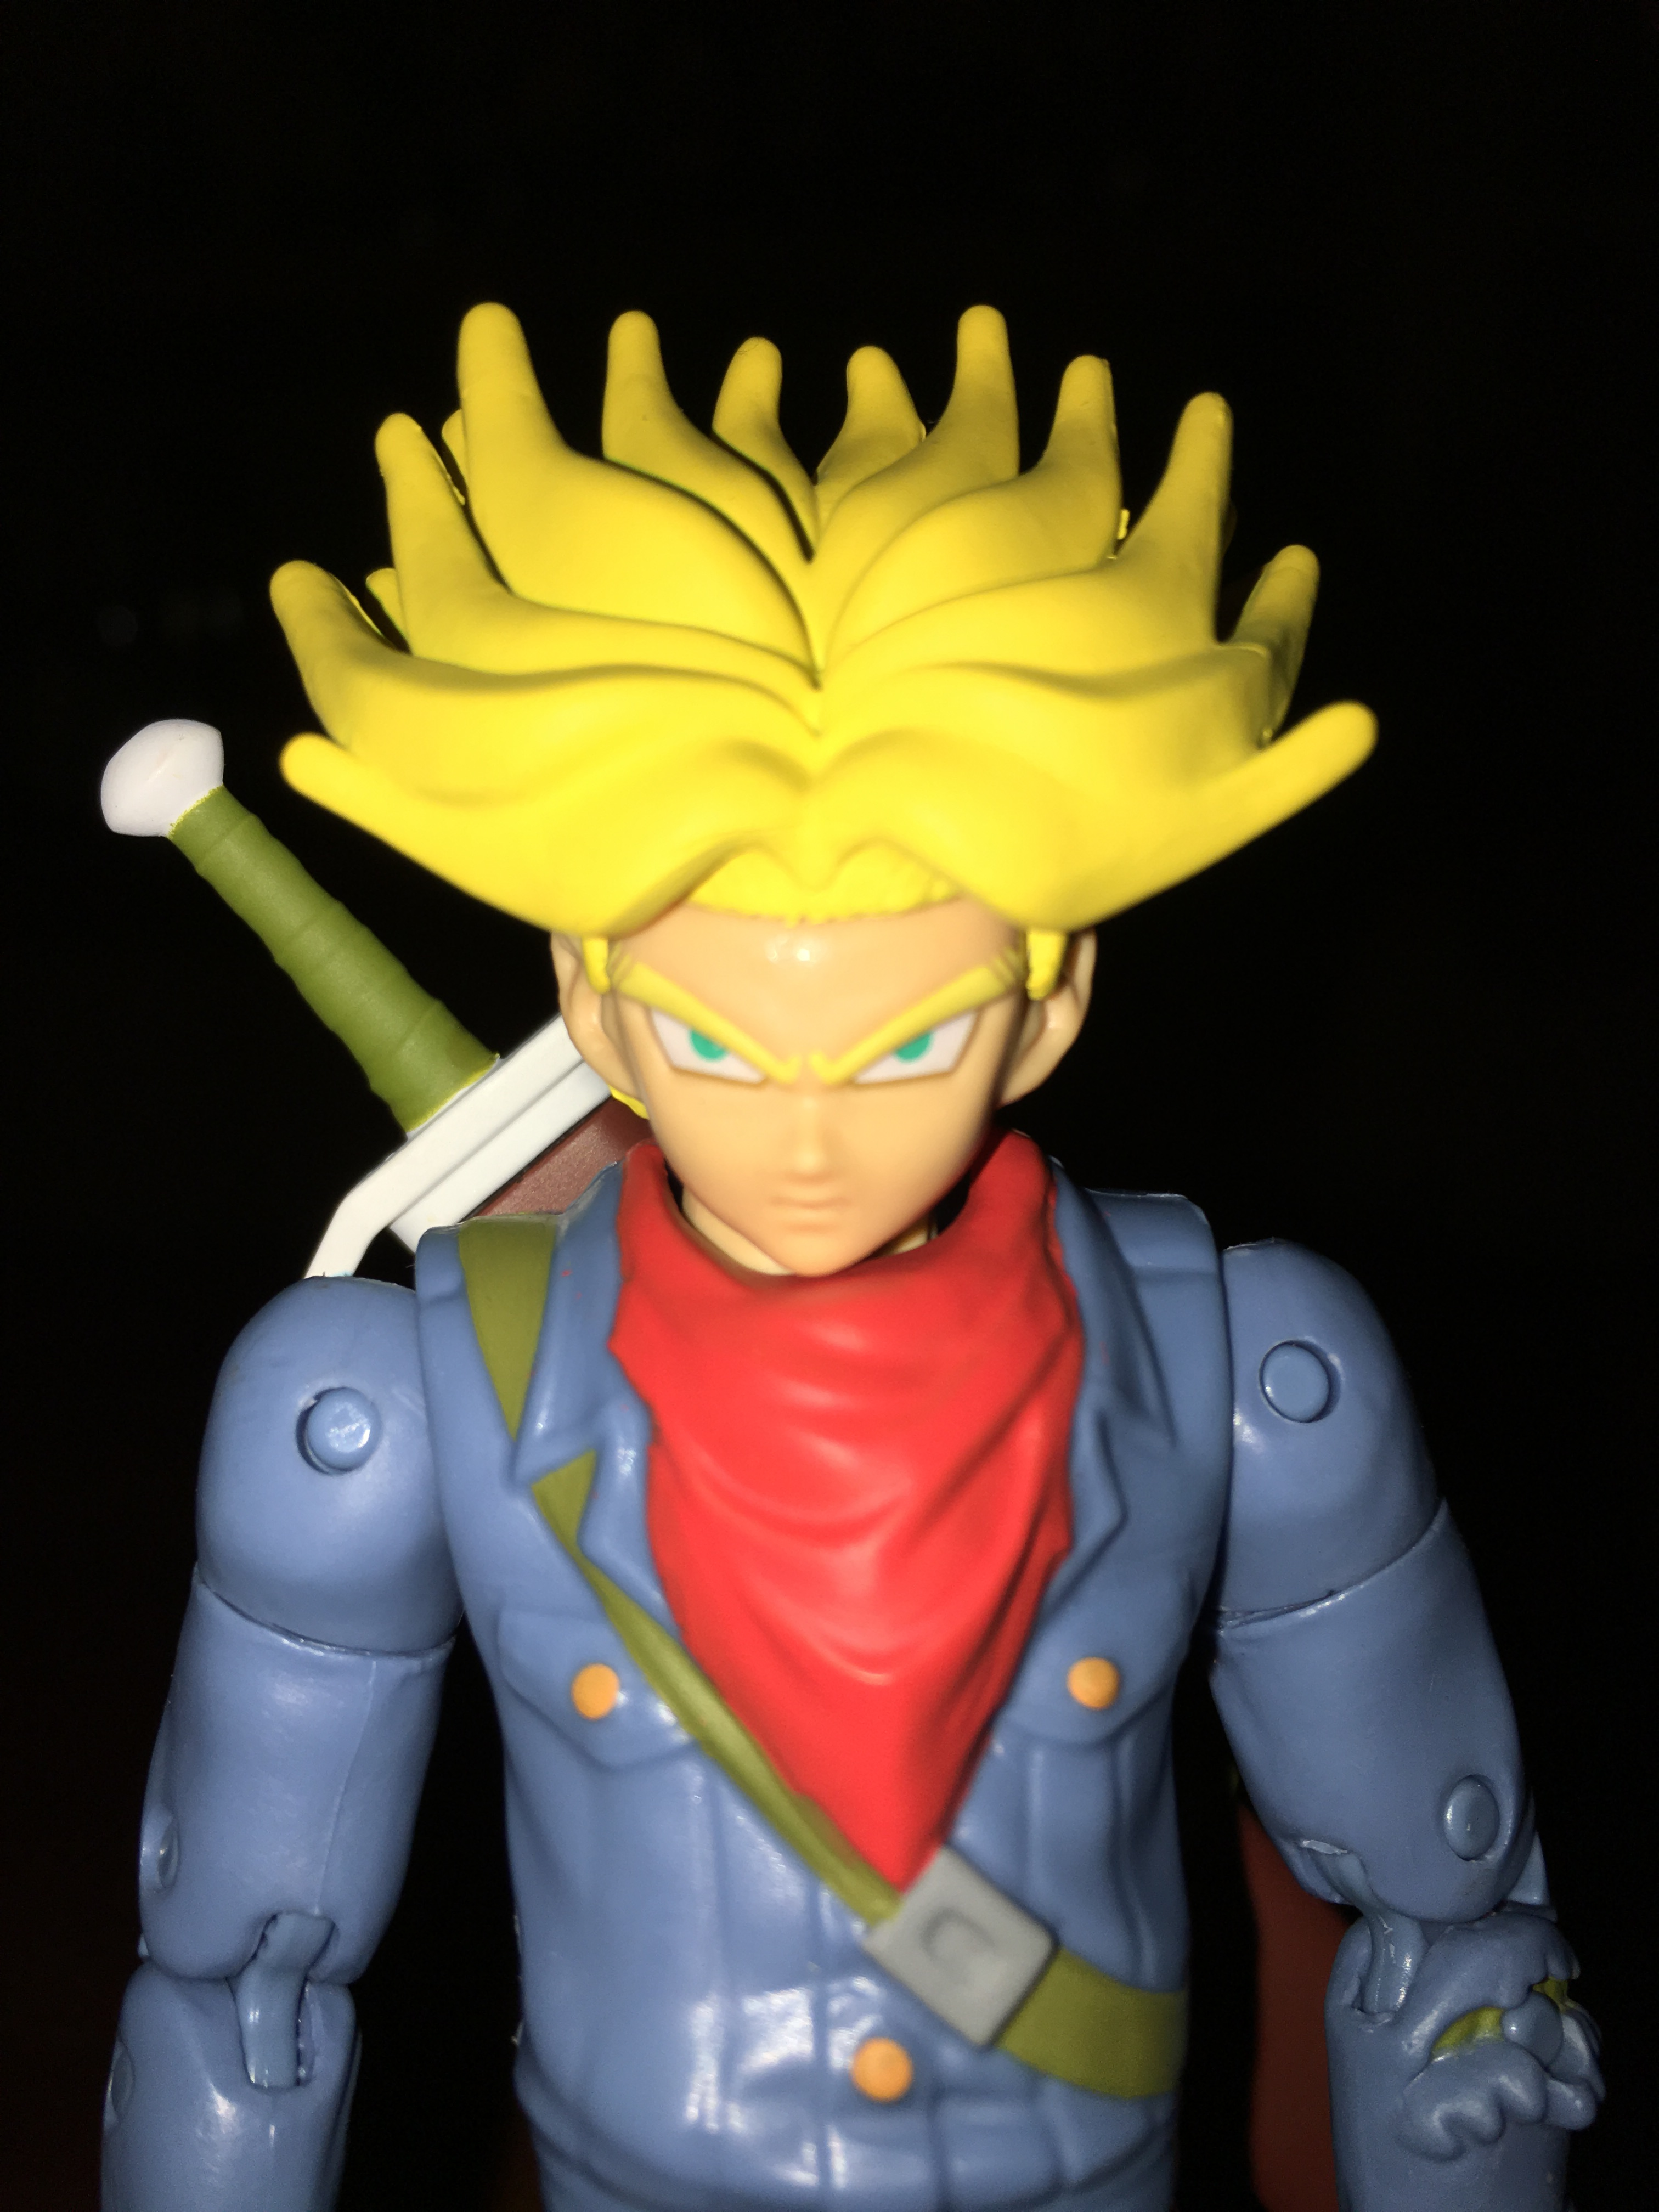 Action & Toy Figures New 6 Pcs Dragon Ball Toy Dragonball Z Dbz Goku Gohan Piccolo Vegeta Super Saiyan Face Change Joint Movable Anime Action Figures Good Reputation Over The World